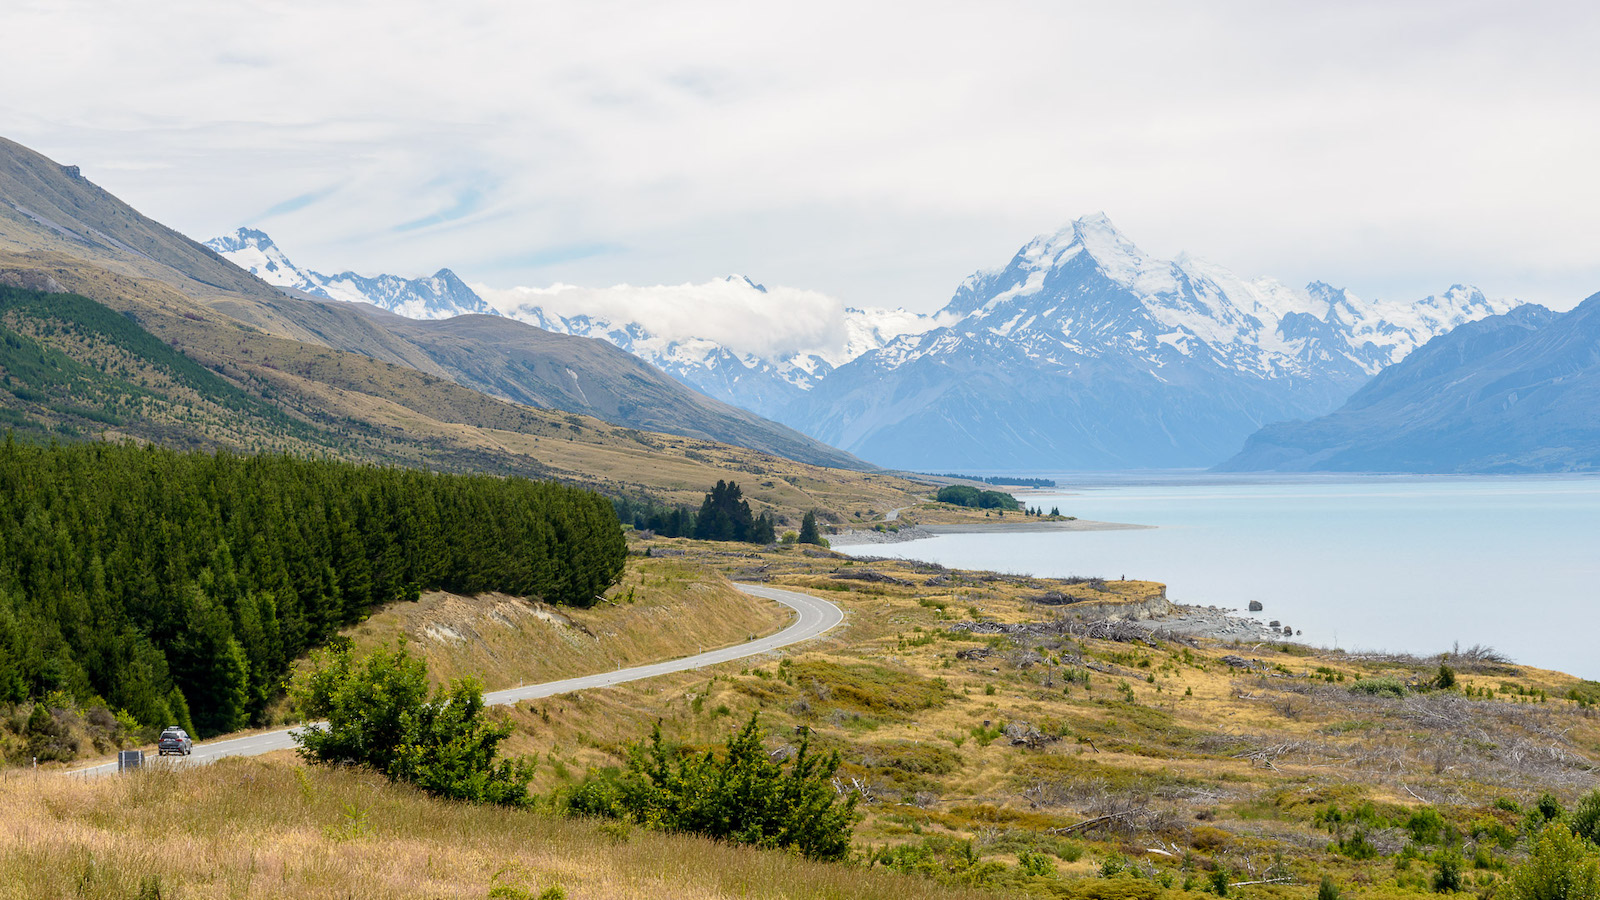 New Zealand - Mount Cook